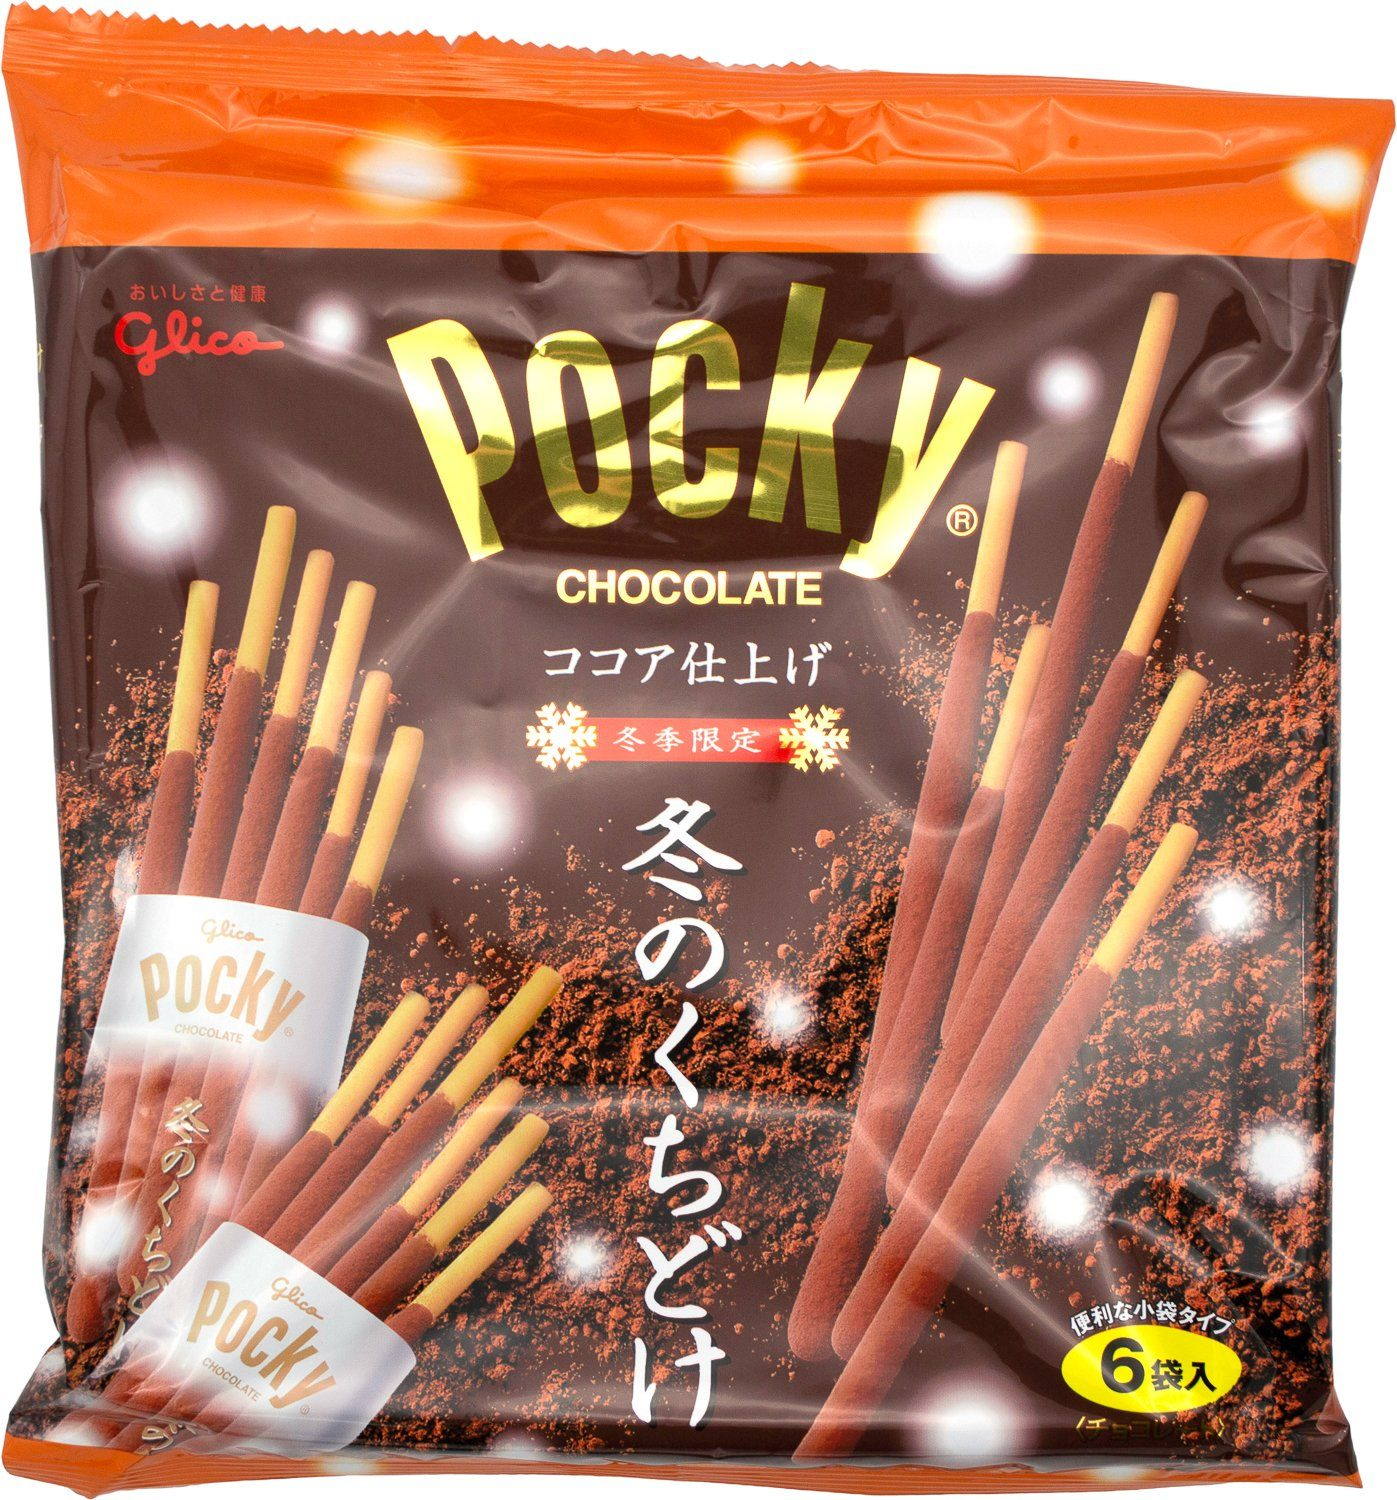 Pocky Cream Covered Biscuit Sticks Glico Winter Melty 4.62 Ounce